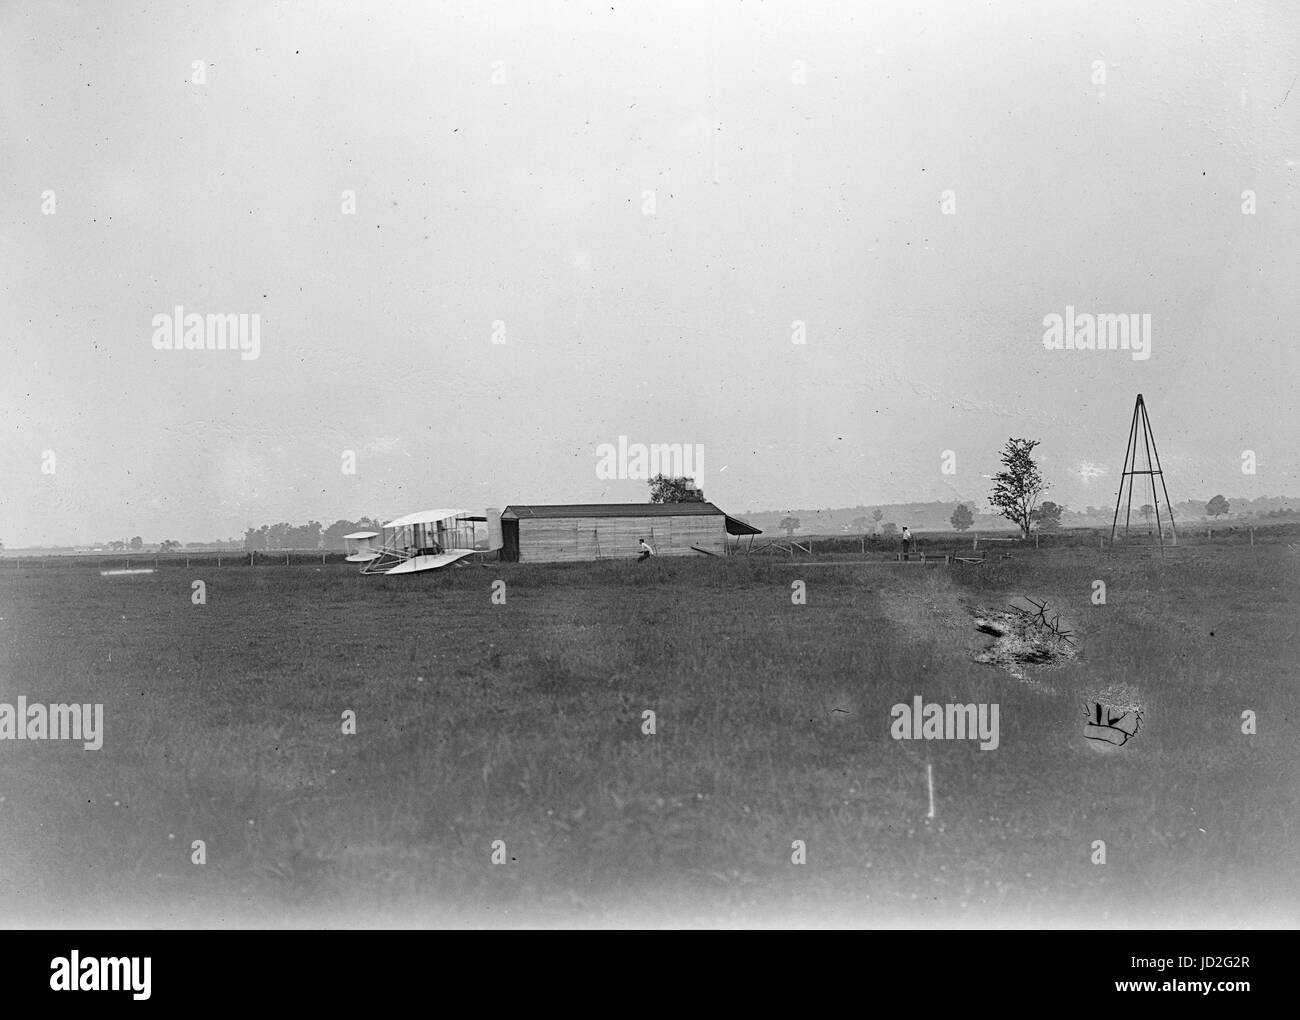 Start of the first flight of 1905, Orville Wright at controls of the machine, near the hangar at Huffman Prairie. - Stock Image